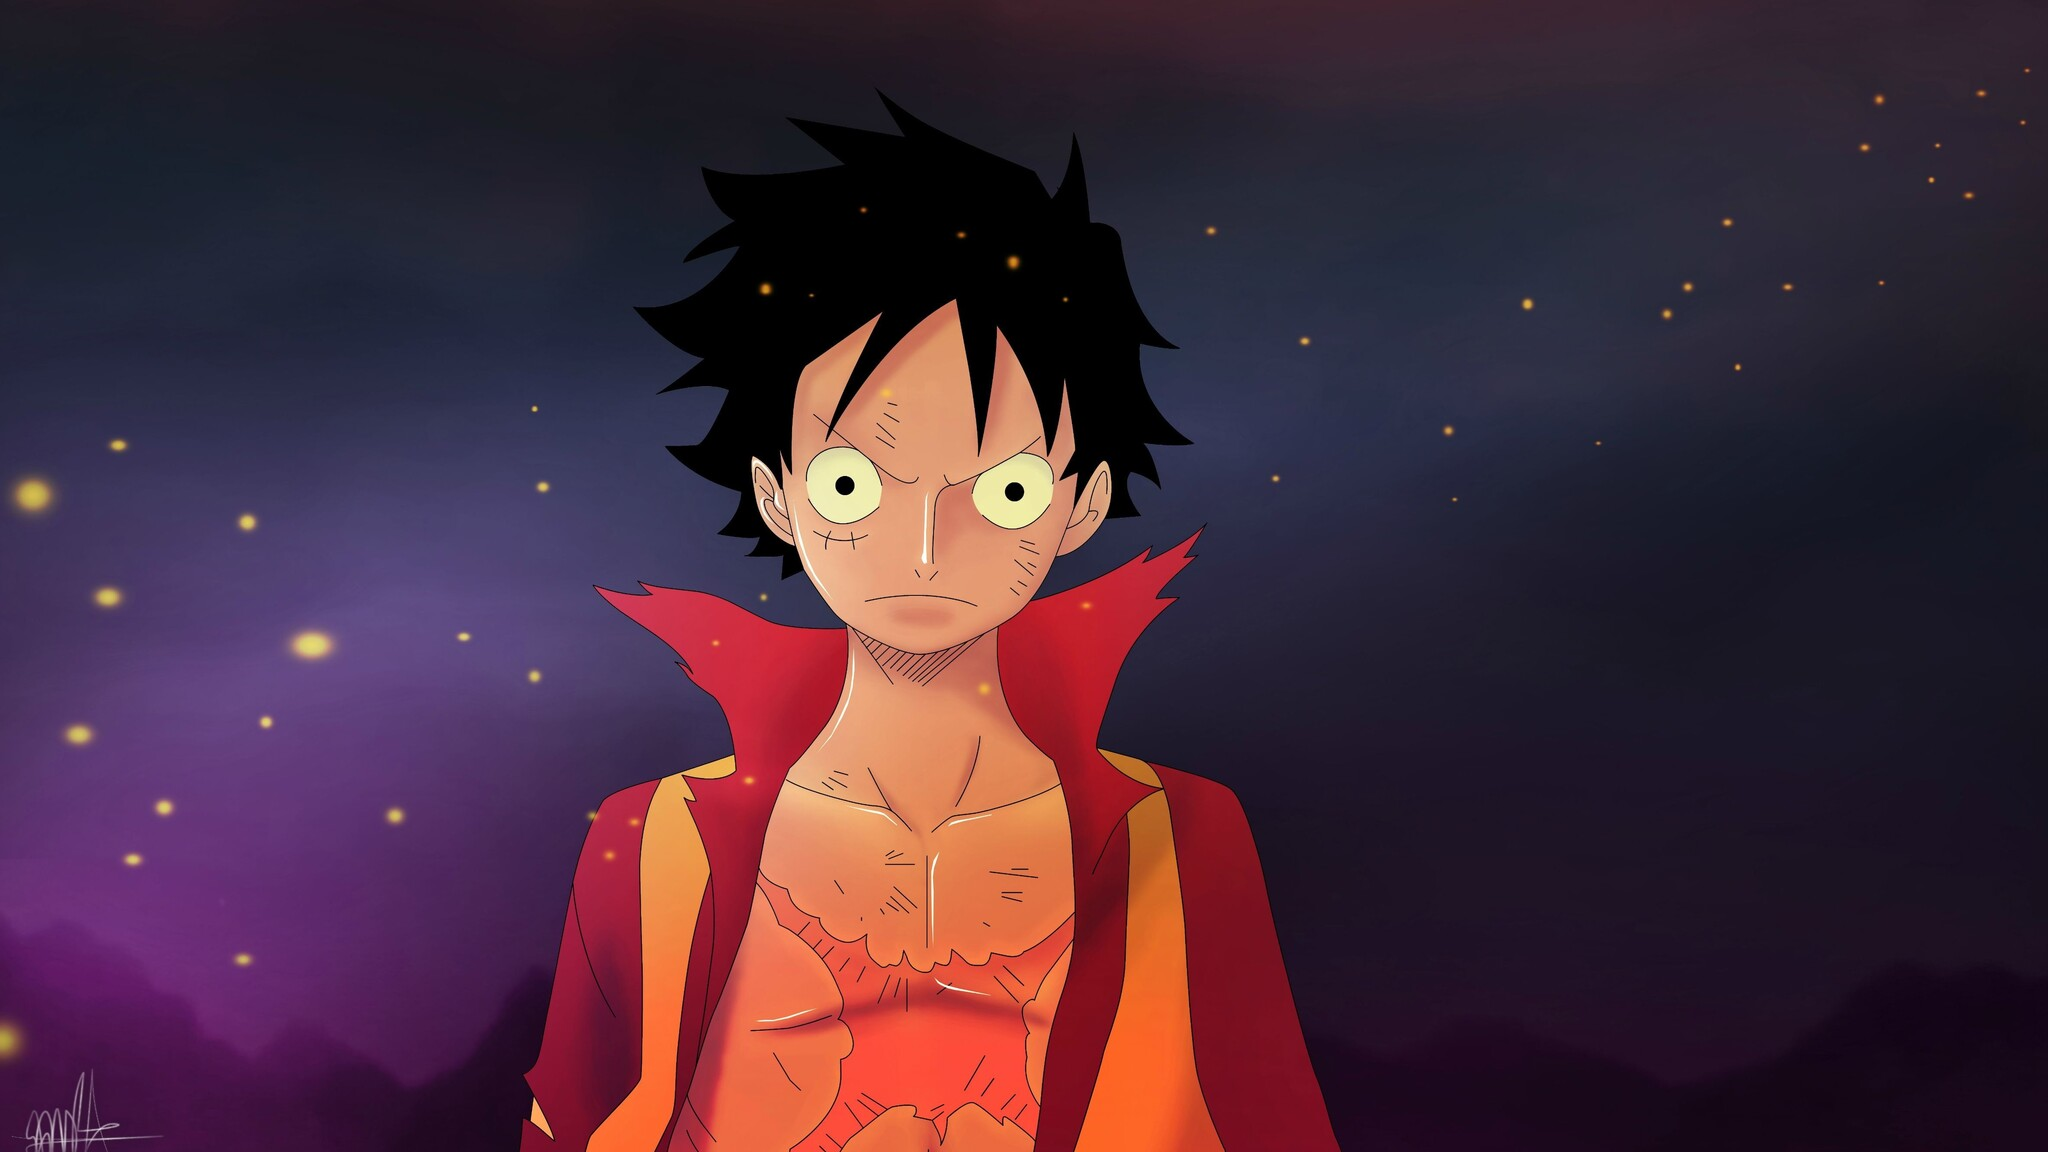 2048x1152 Monkey D Luffy One Piece 4k 2048x1152 Resolution Hd 4k